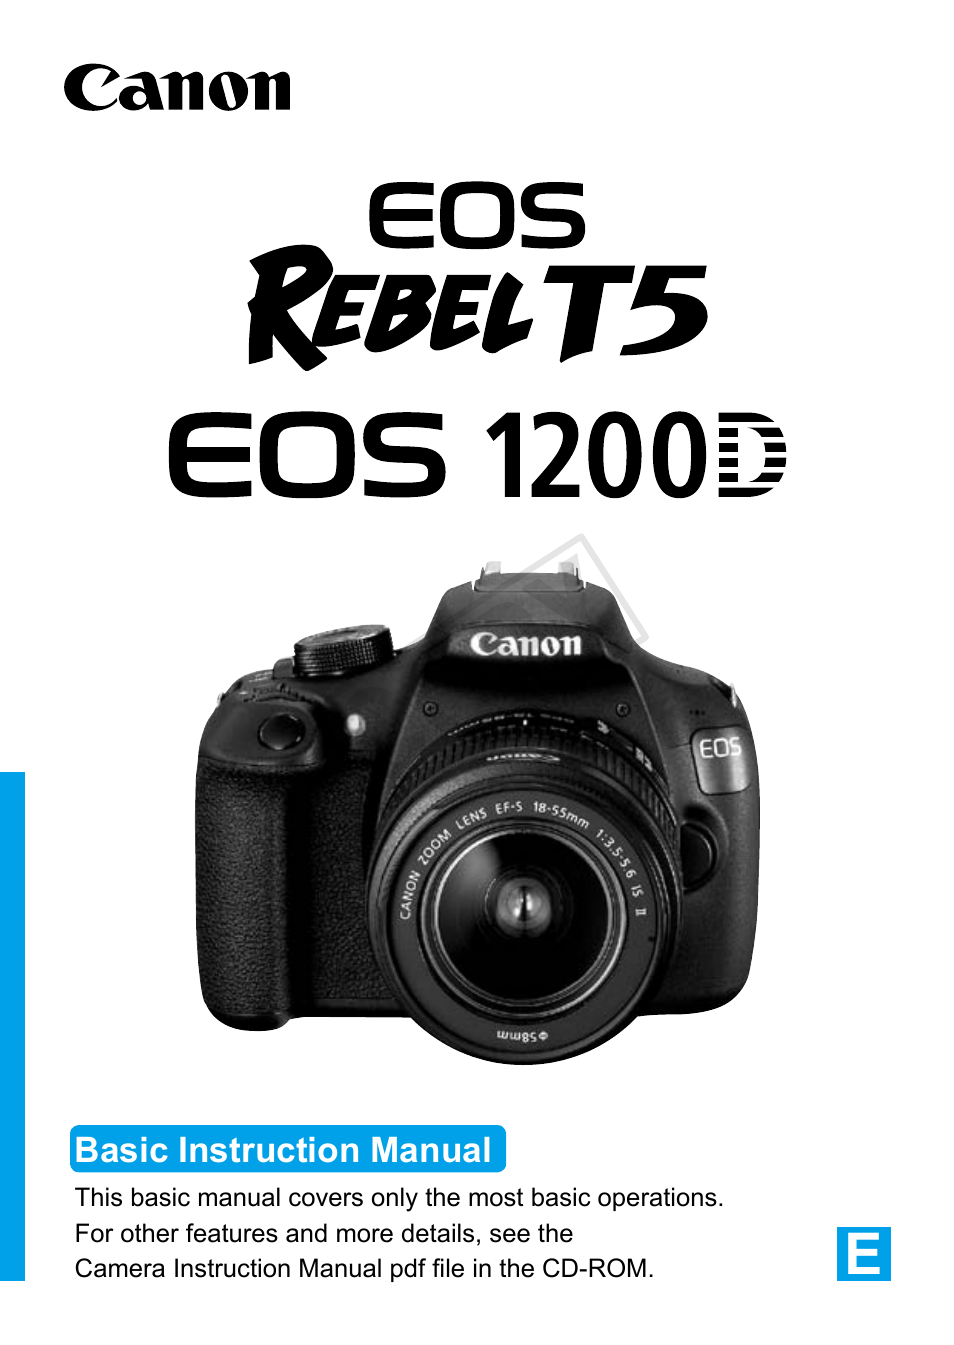 3000v user manual browse manual guides u2022 rh trufflefries co Canon EOS Logo Canon EOS Rebel T5